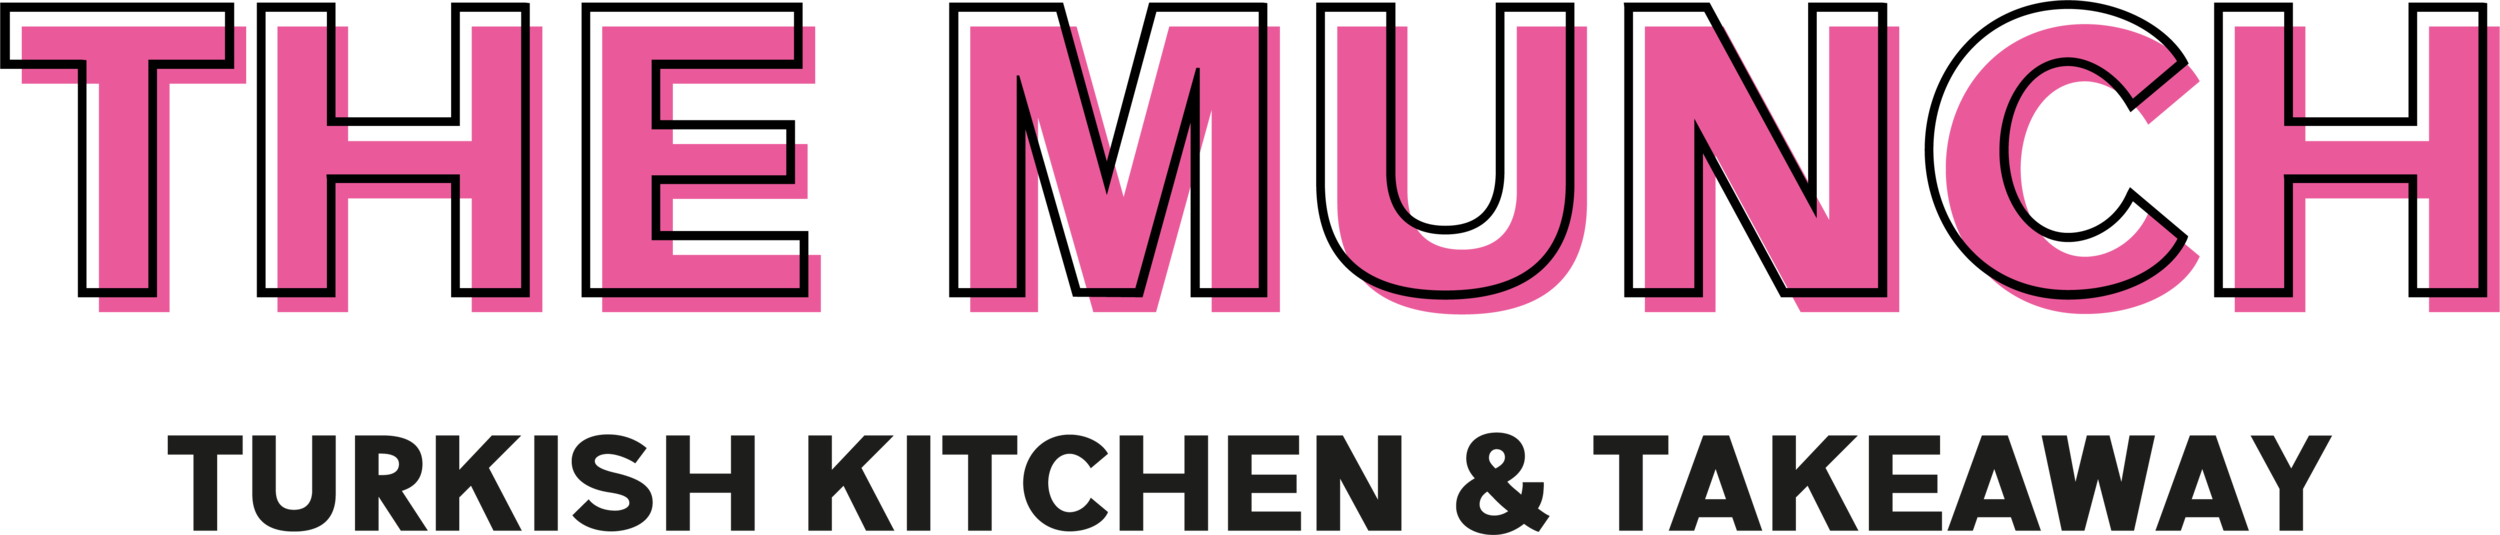 the munch web logo.png